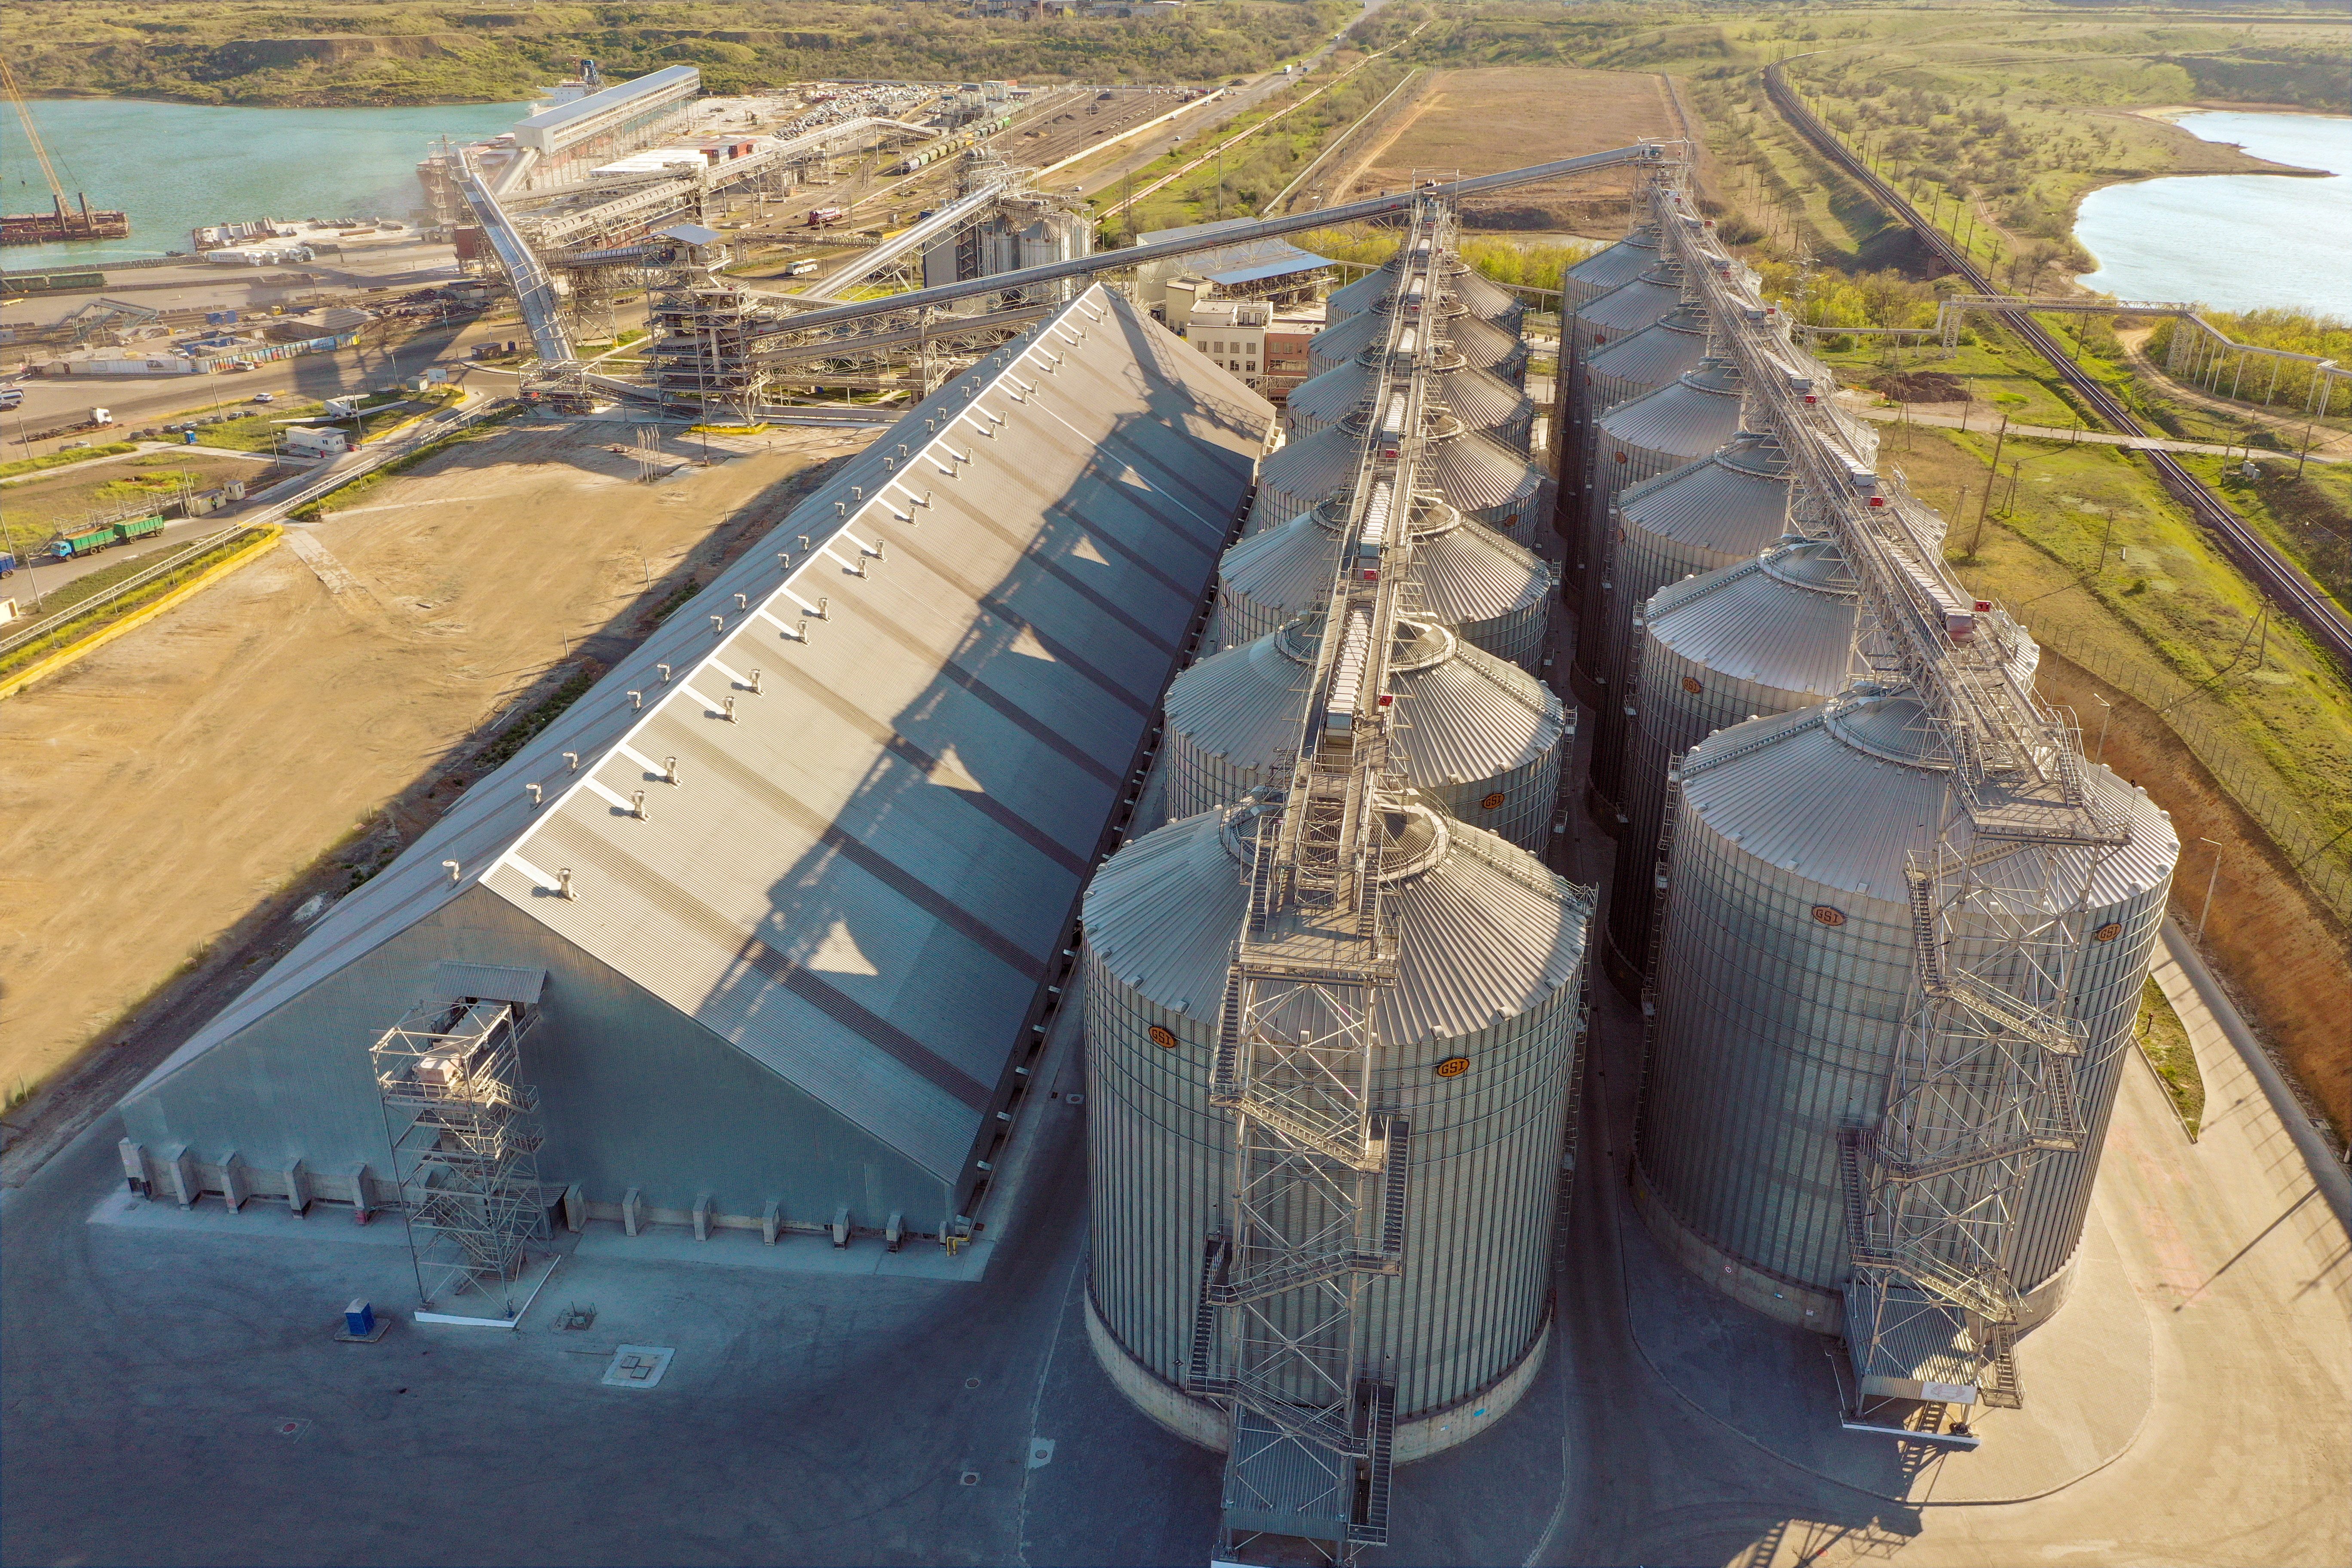 One of the largest granaries in Ukraine with a storage capacity of up to 80 thousand tons